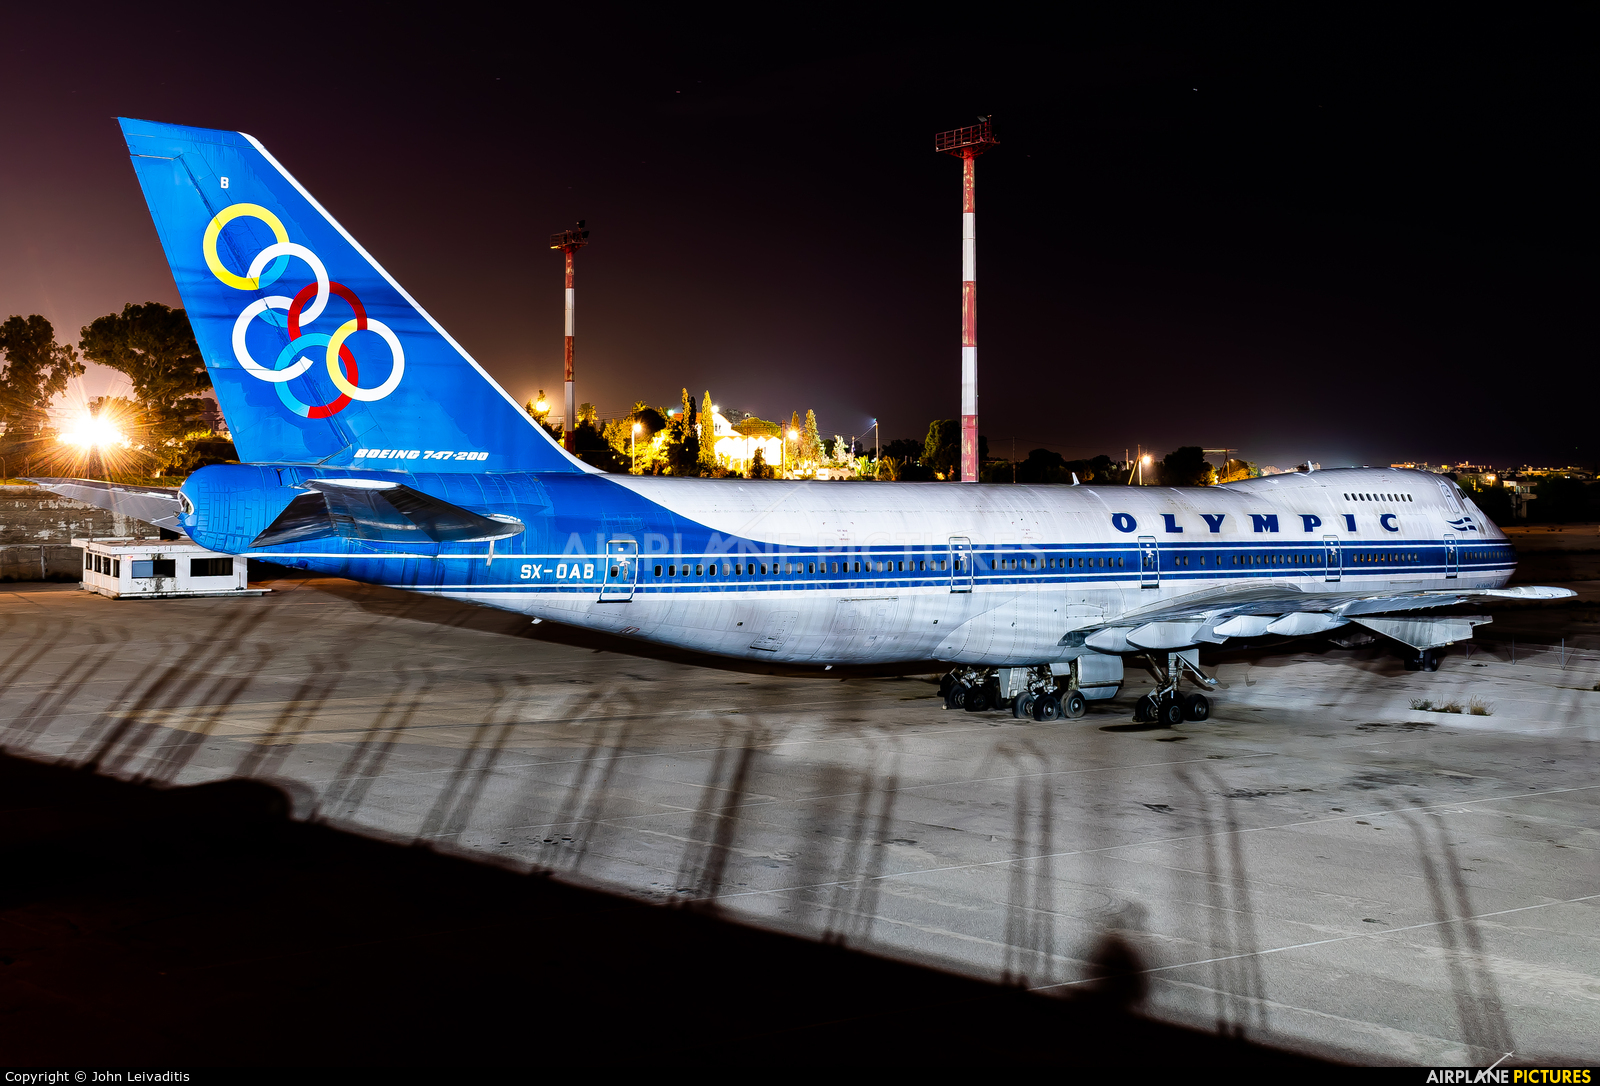 Olympic Airlines SX-OAB aircraft at Athens - Hellinikon